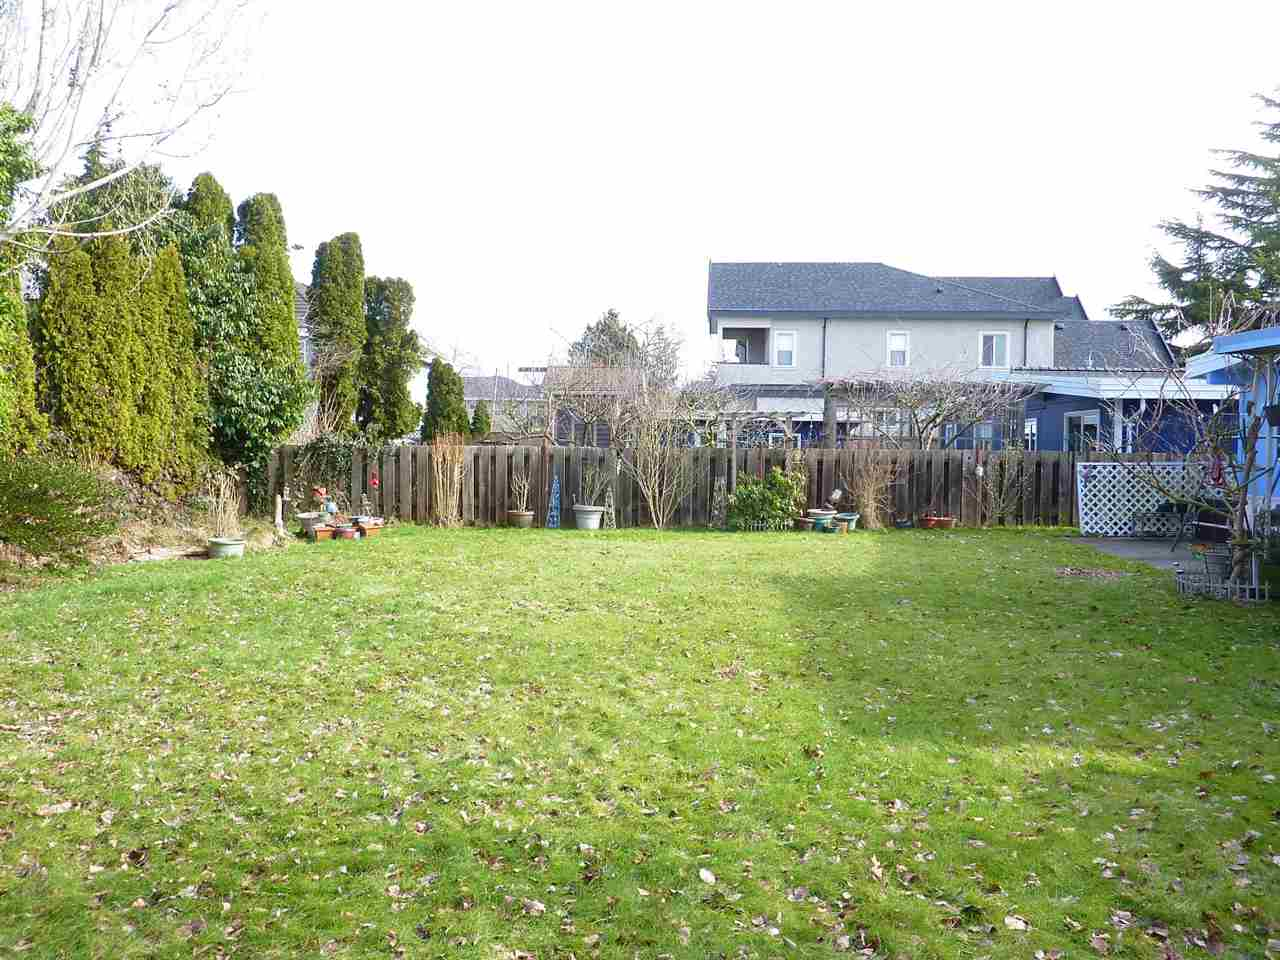 Photo 4: 3491 SPRINGFORD Avenue in Richmond: Steveston North House for sale : MLS® # R2139973